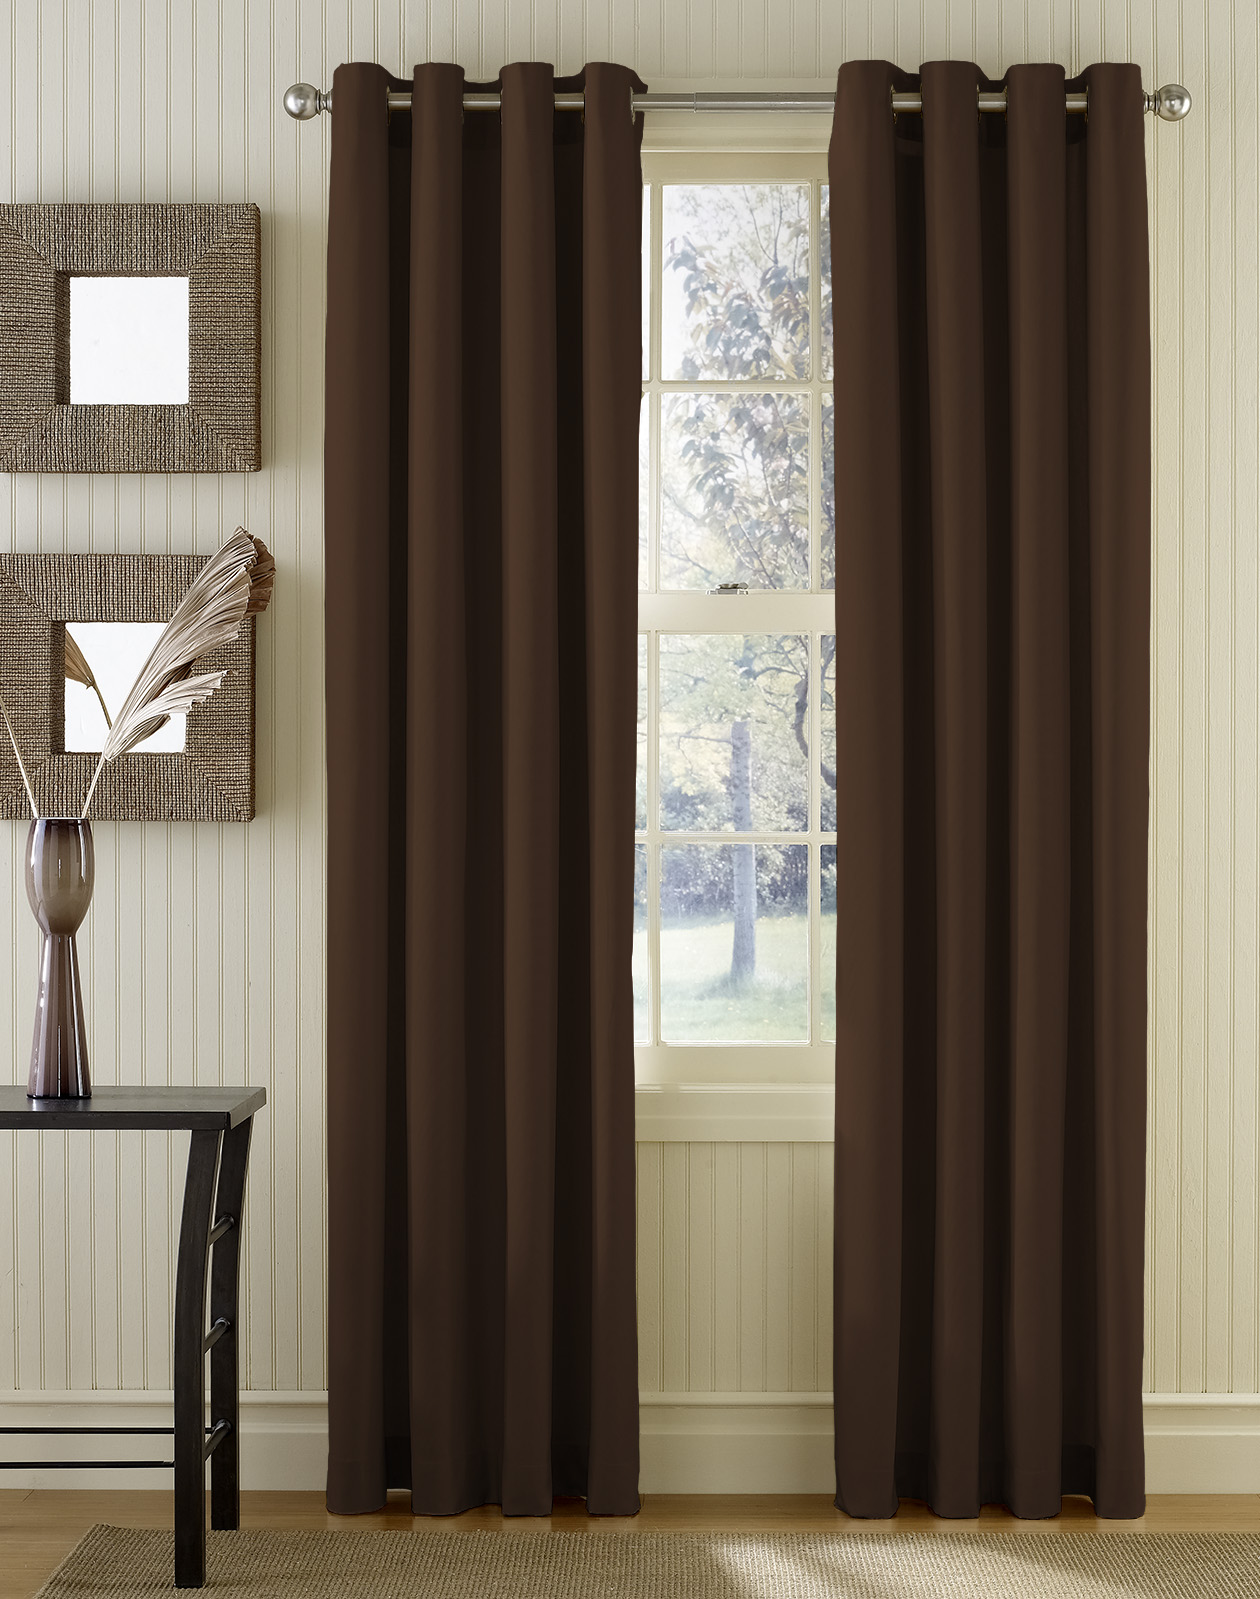 Curtain interior design - Curtain photo designs ...